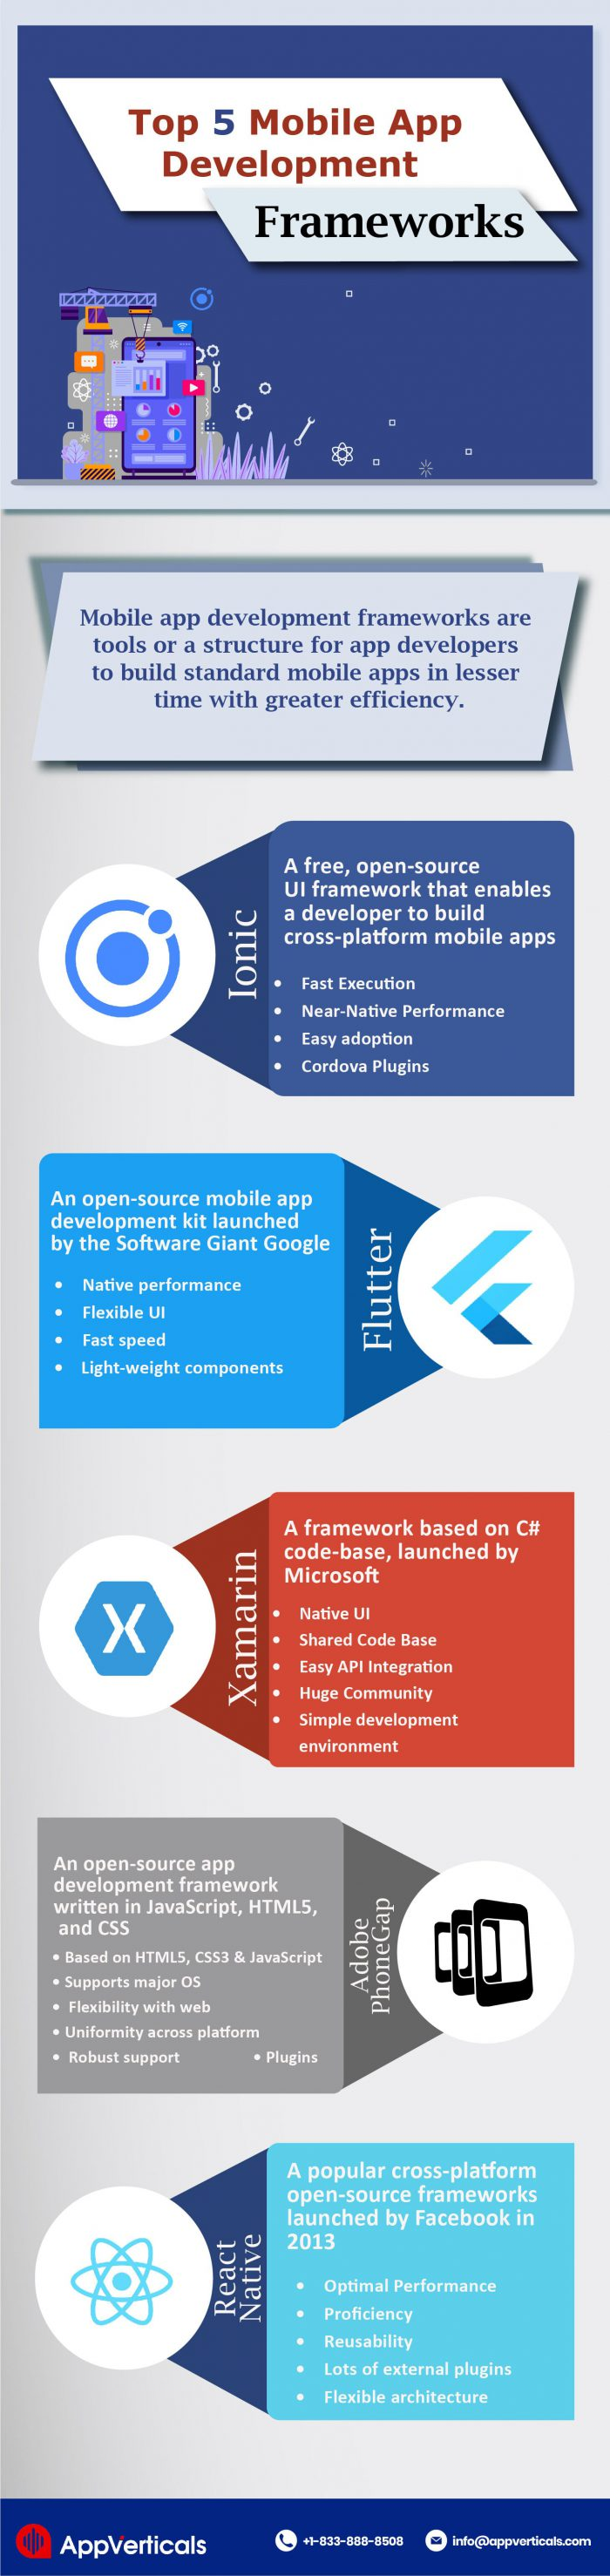 app development frameworks ionic, flutter, Xamarin, phone gap, React Native